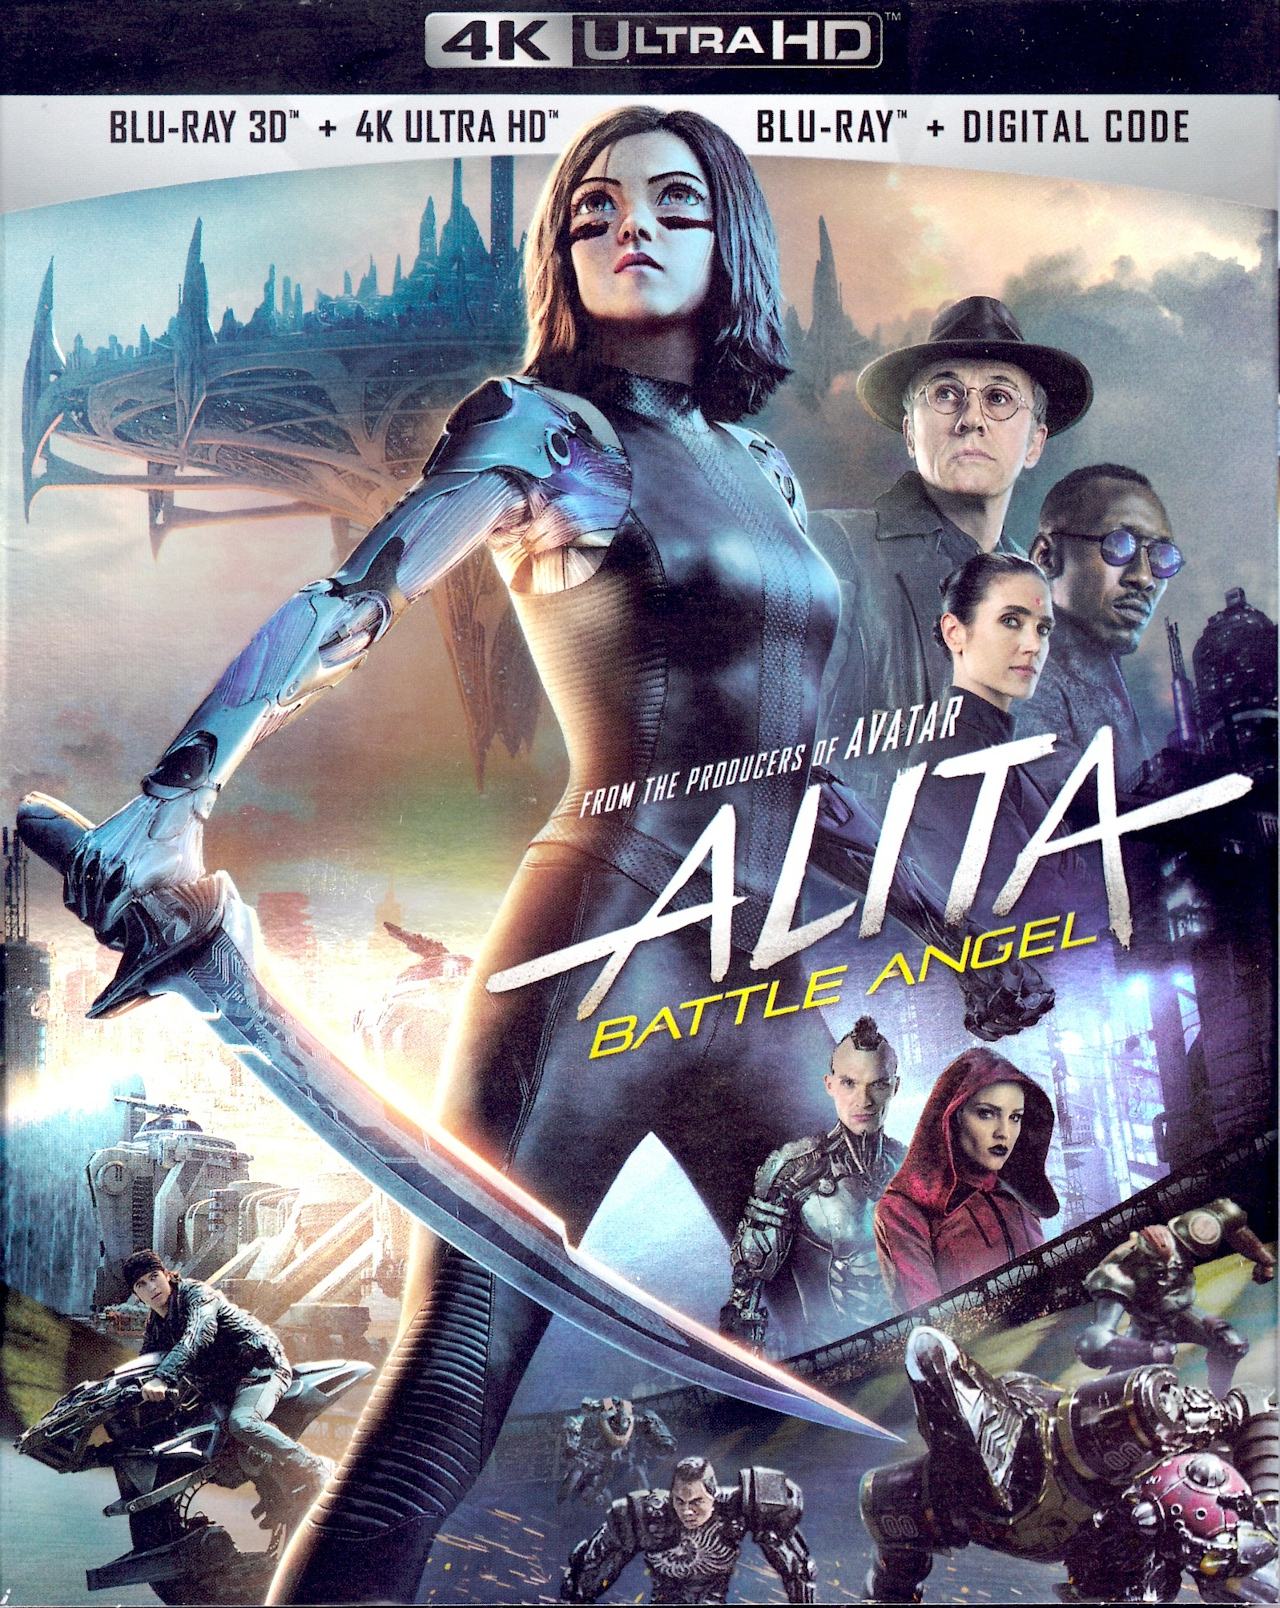 Alita Battle Angel 4K UHD - Best 4K Blu-ray Animated 3D Movies